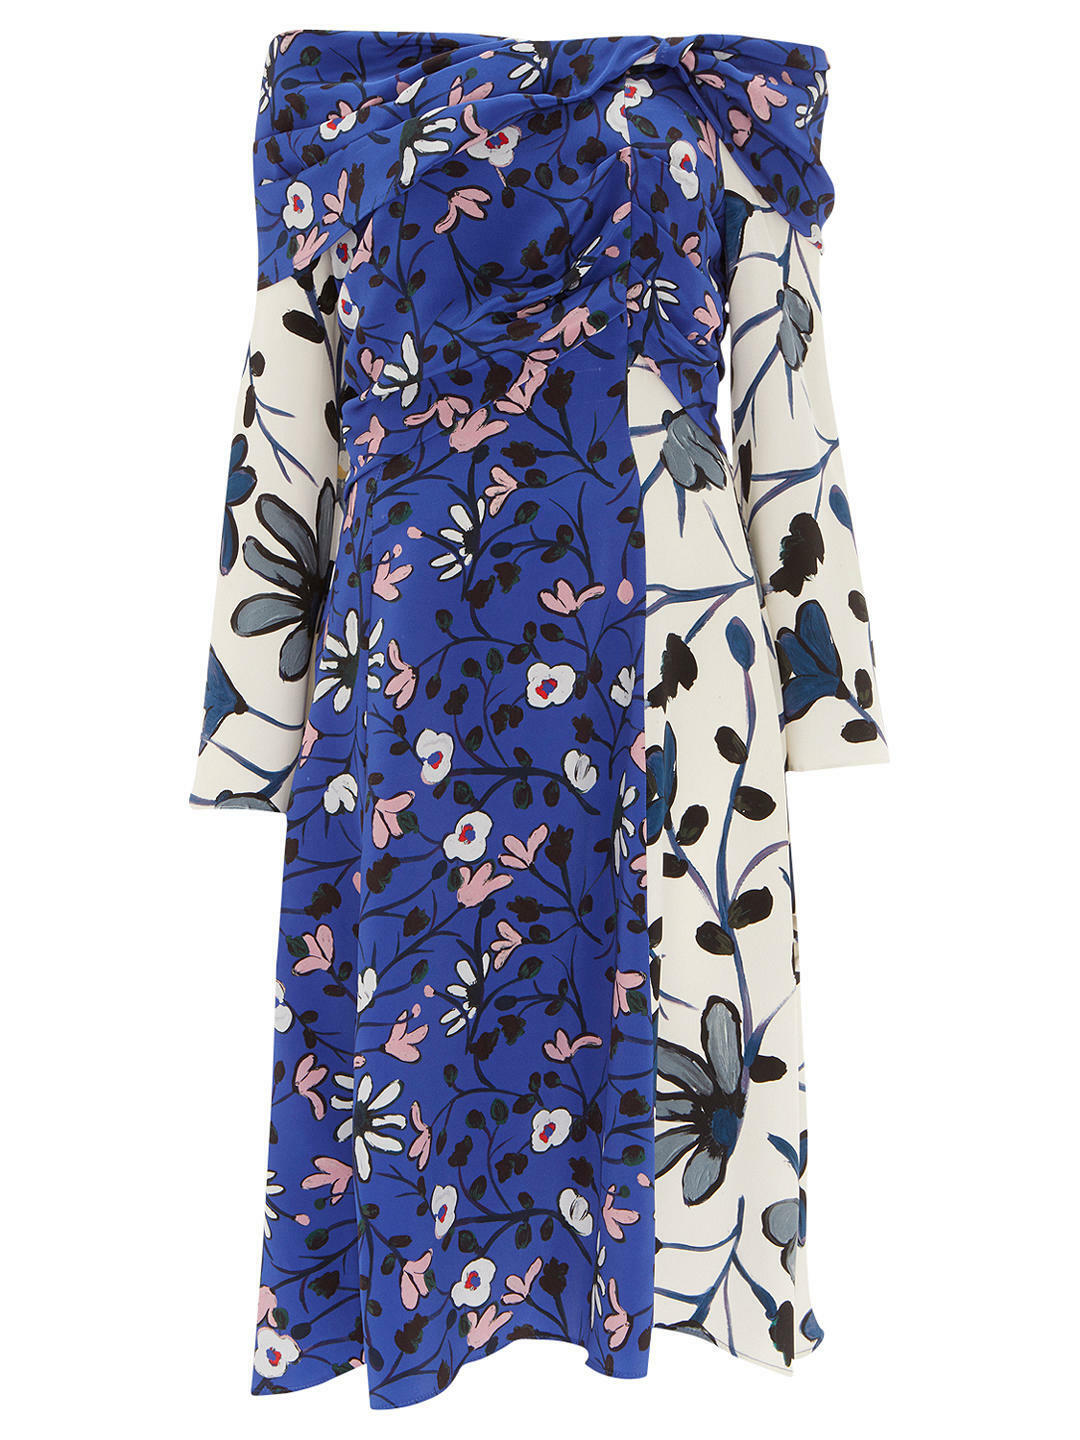 Finery Casella Off Shoulder Virginia Bellflower Print Dress UK SIze 16 RRP